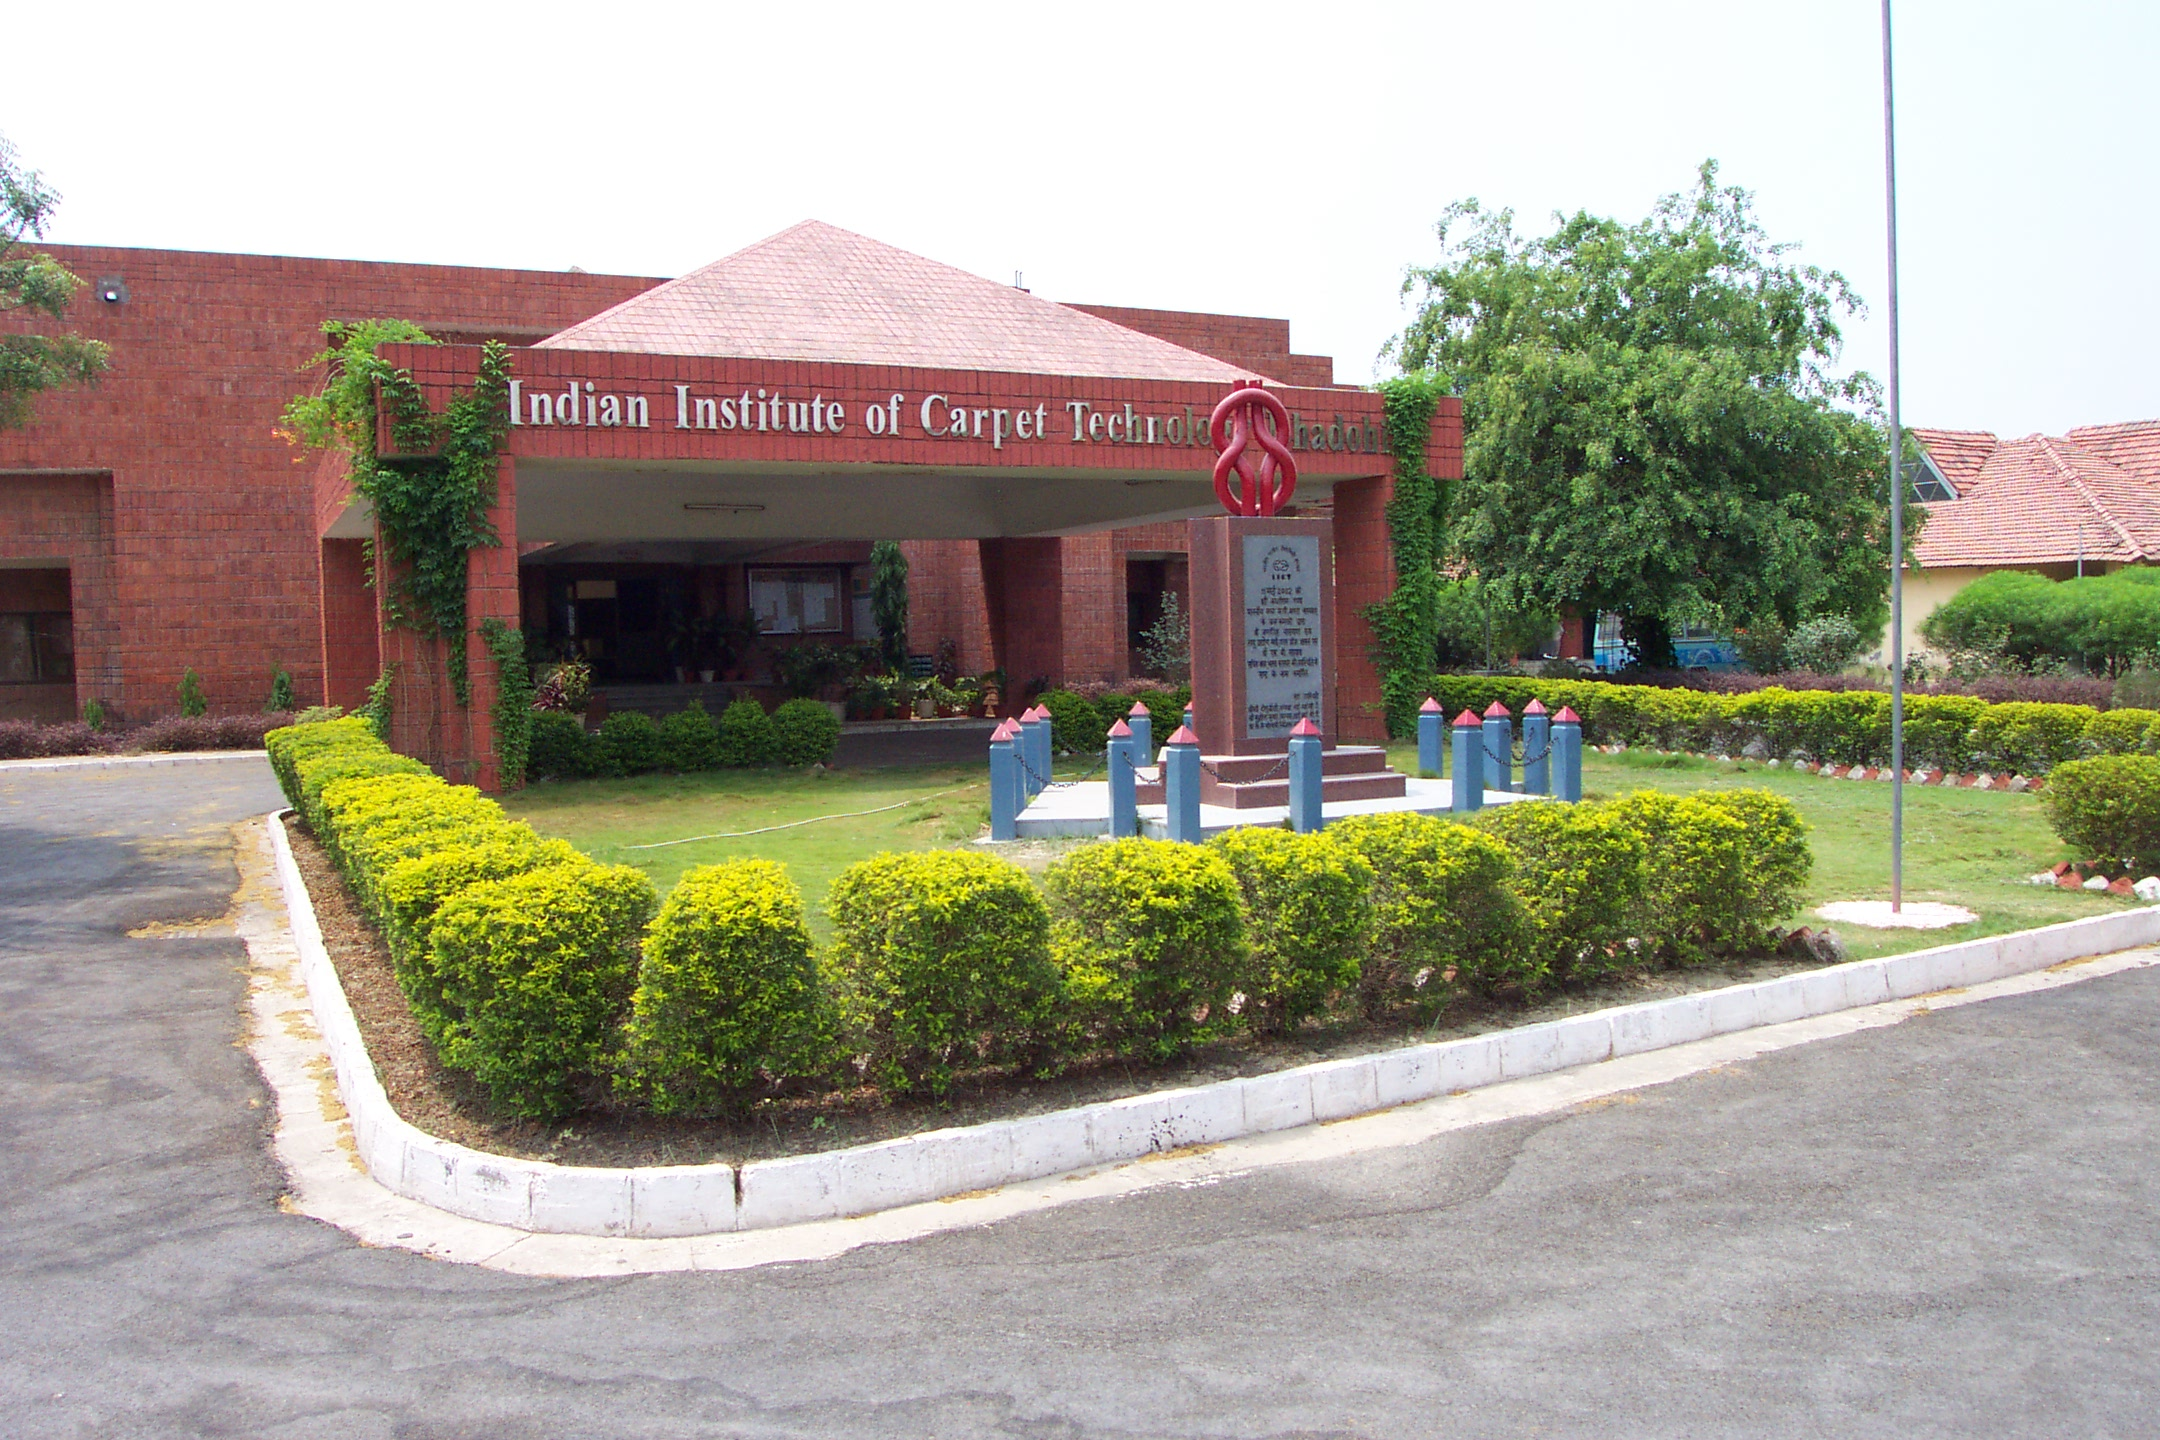 Indian Institute of Carpet Technology - [IICT], Bhadohi